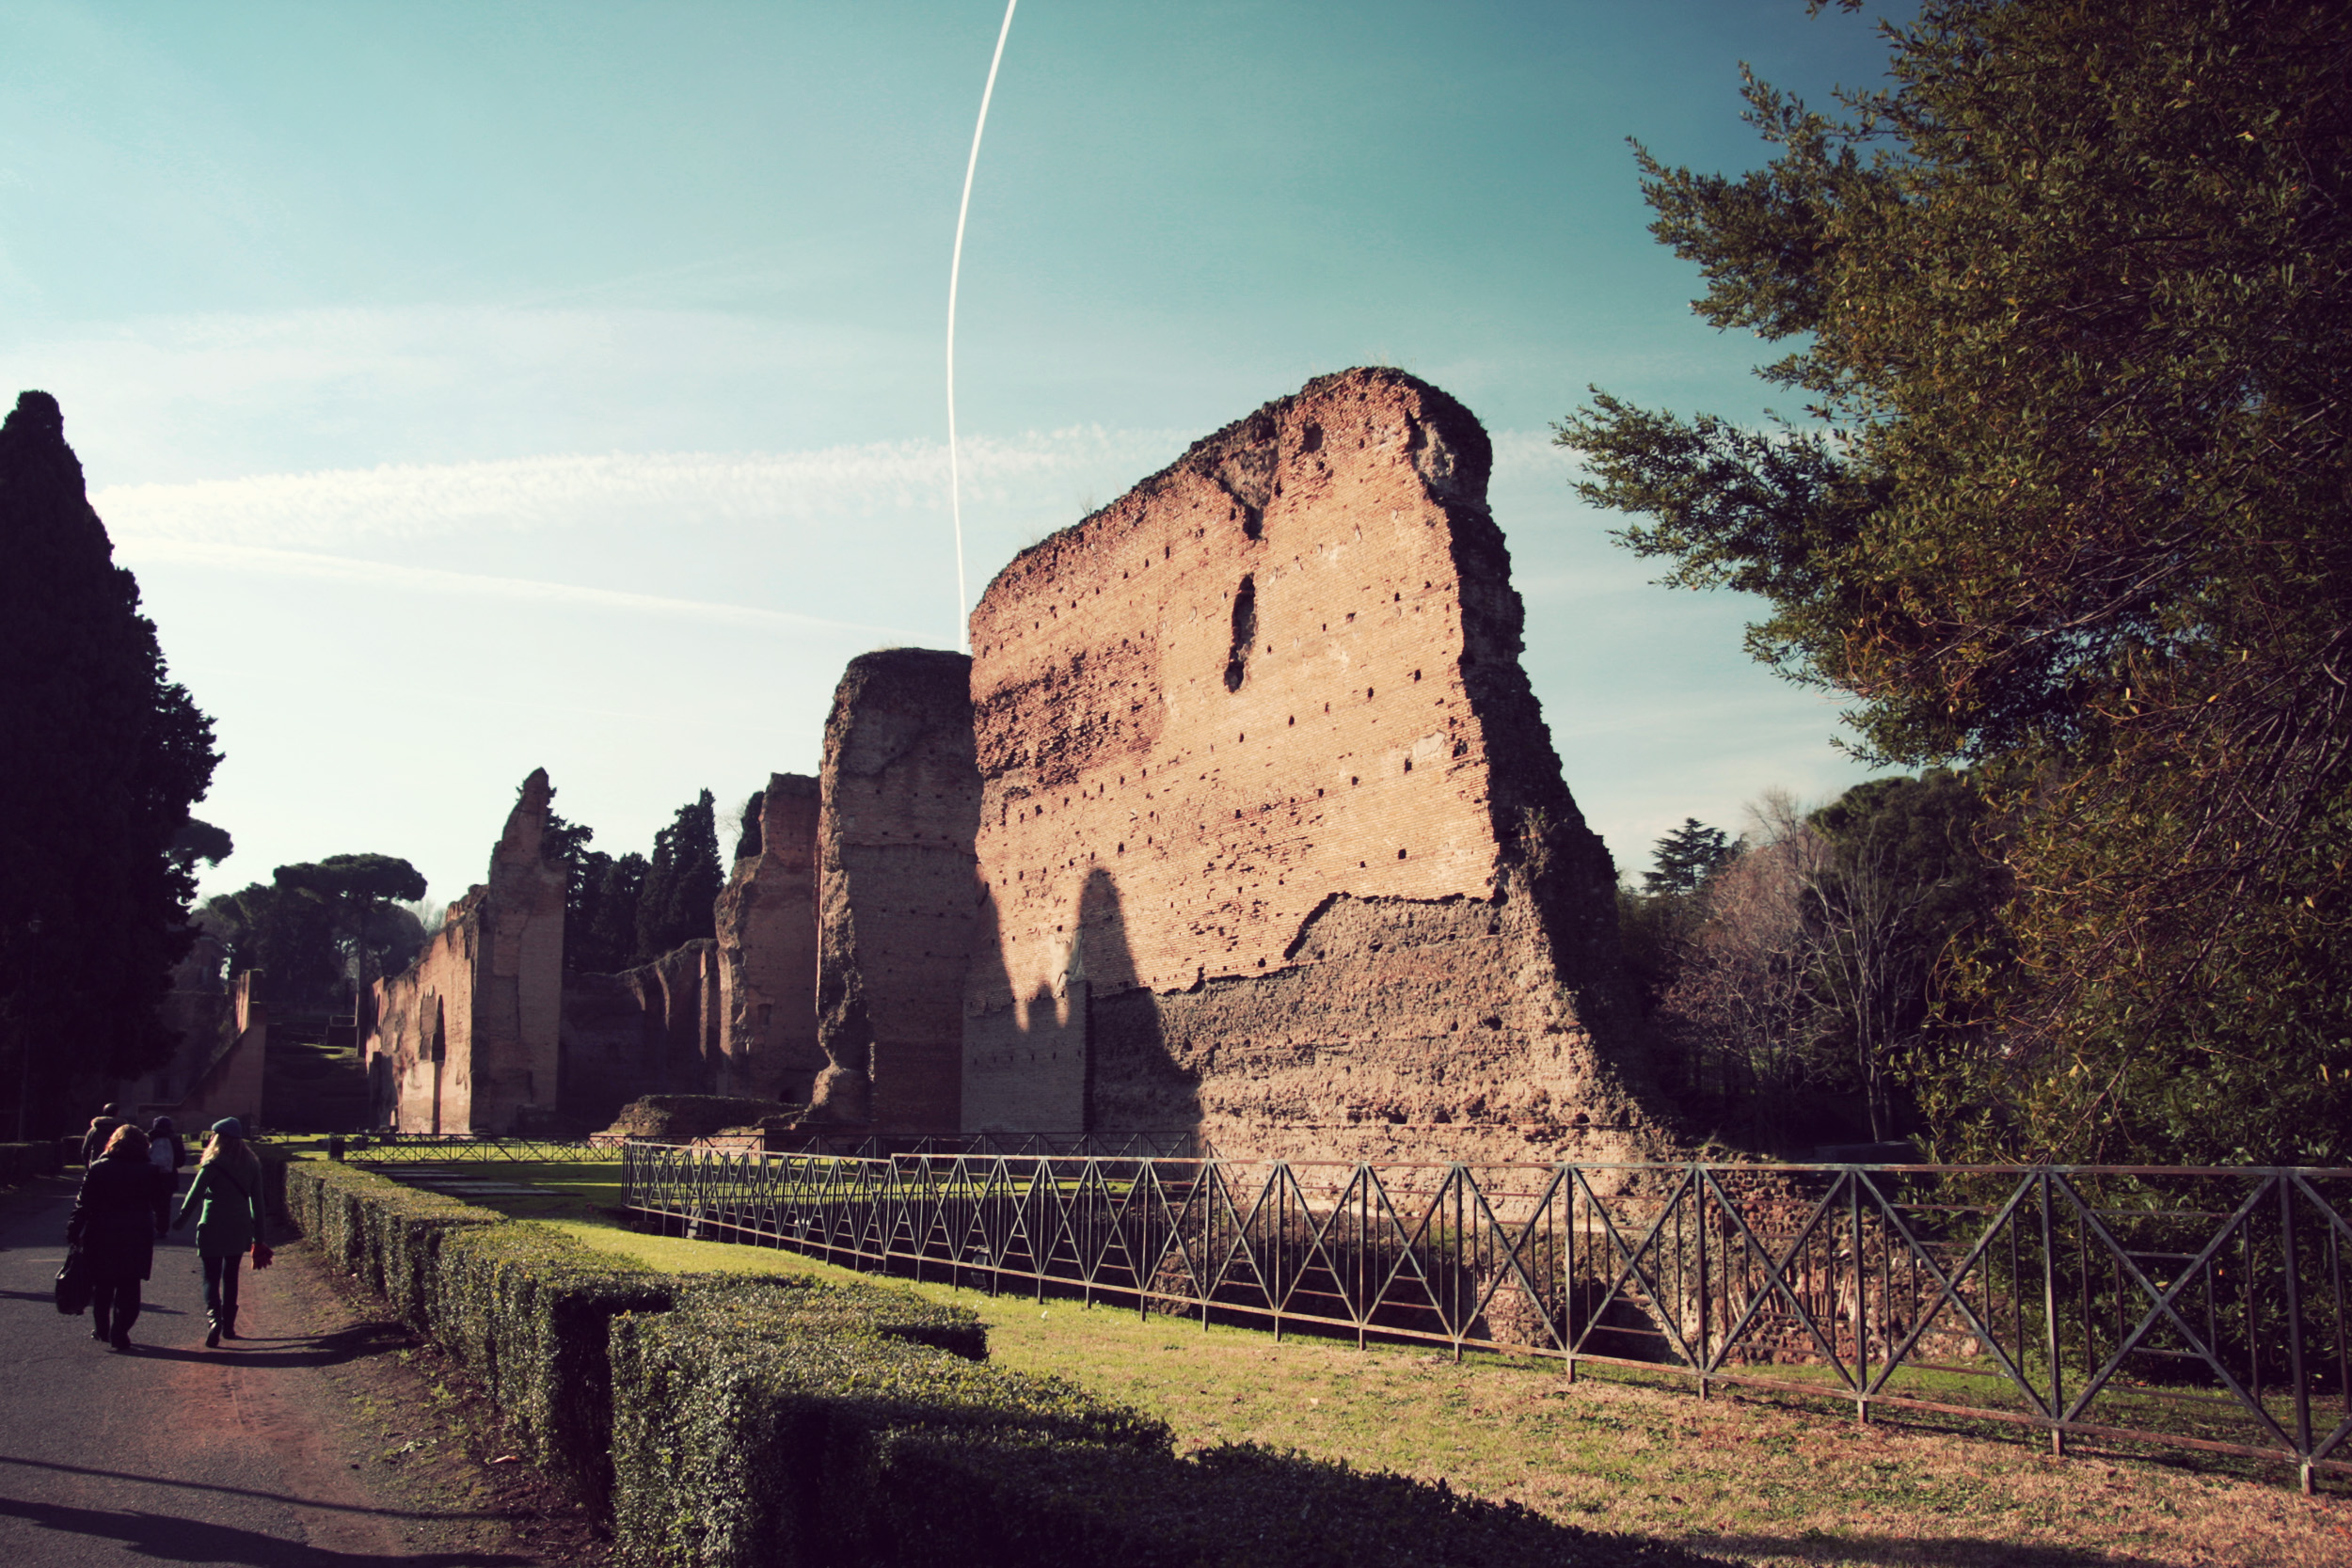 First the Catecombes, then the Baths of Caracalla.